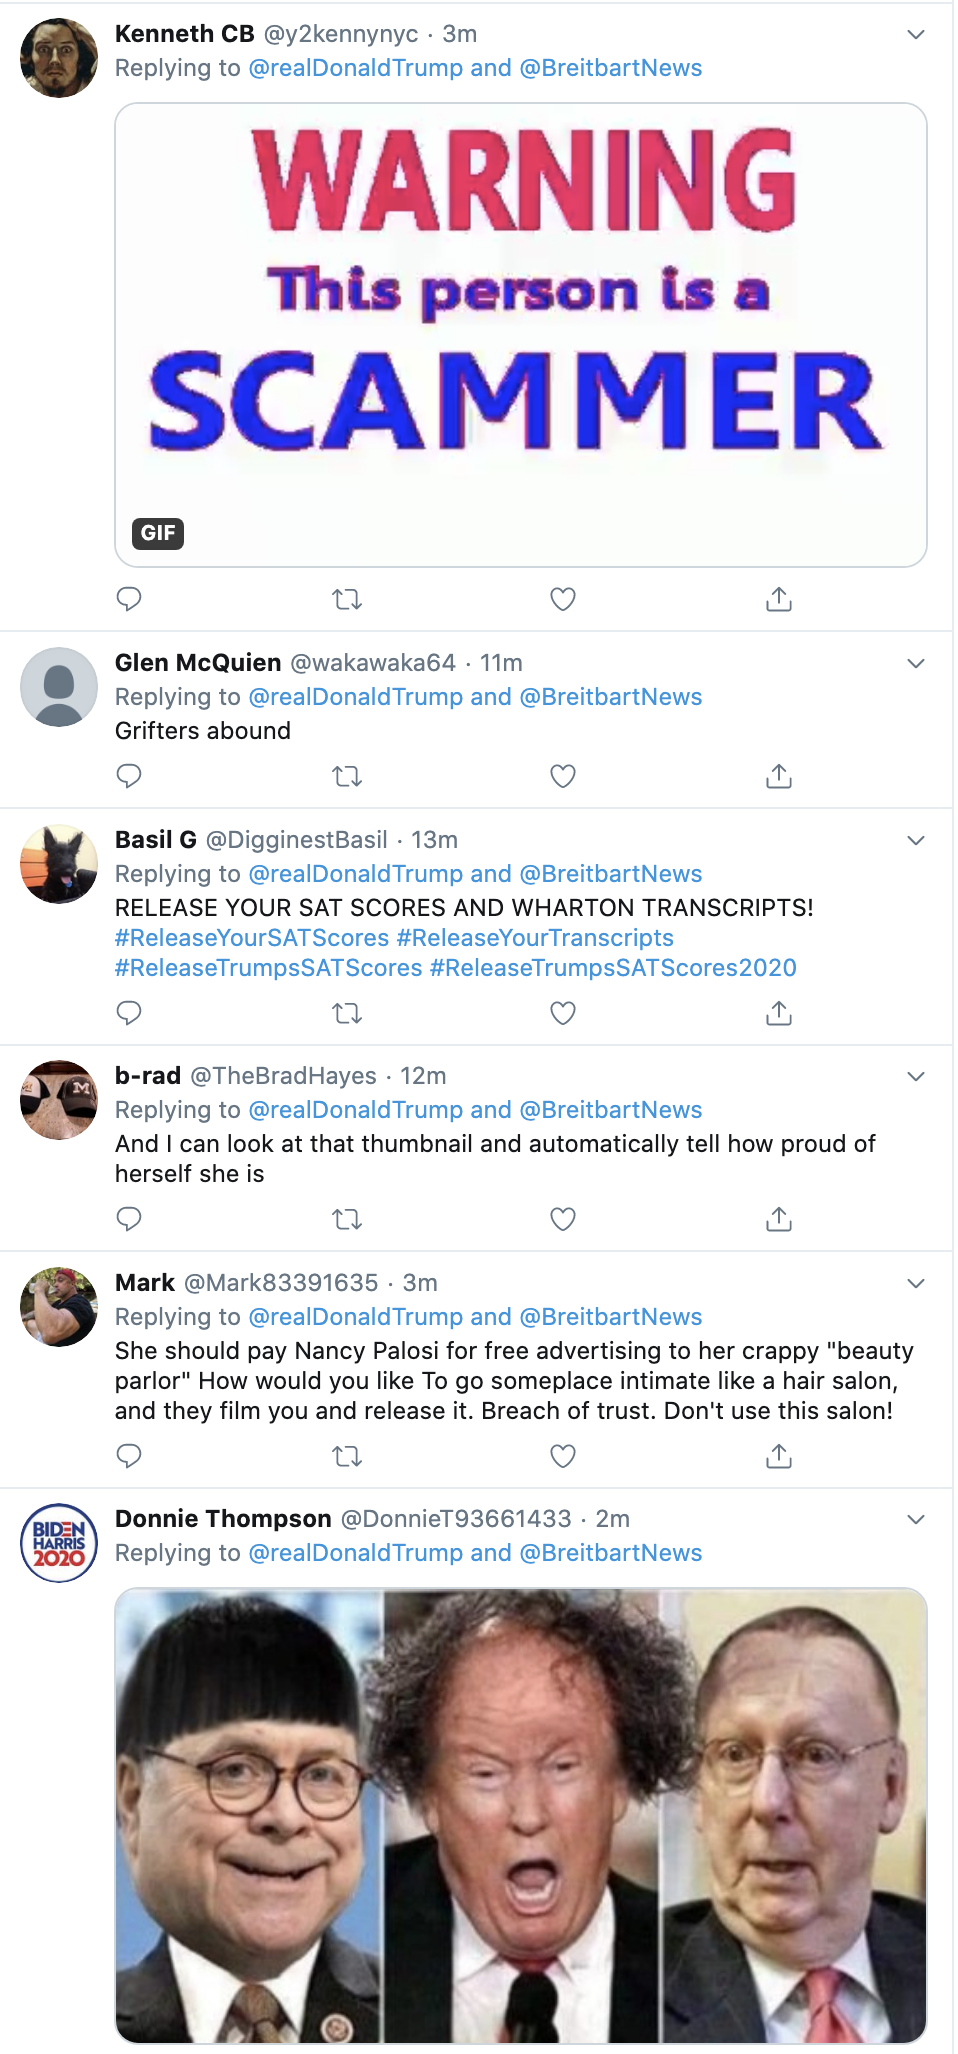 Screen-Shot-2020-09-09-at-7.18.28-AM Trump Erupts Into 7-Tweet Wednesday Morning Madness Election 2020 Featured National Security Politics Top Stories